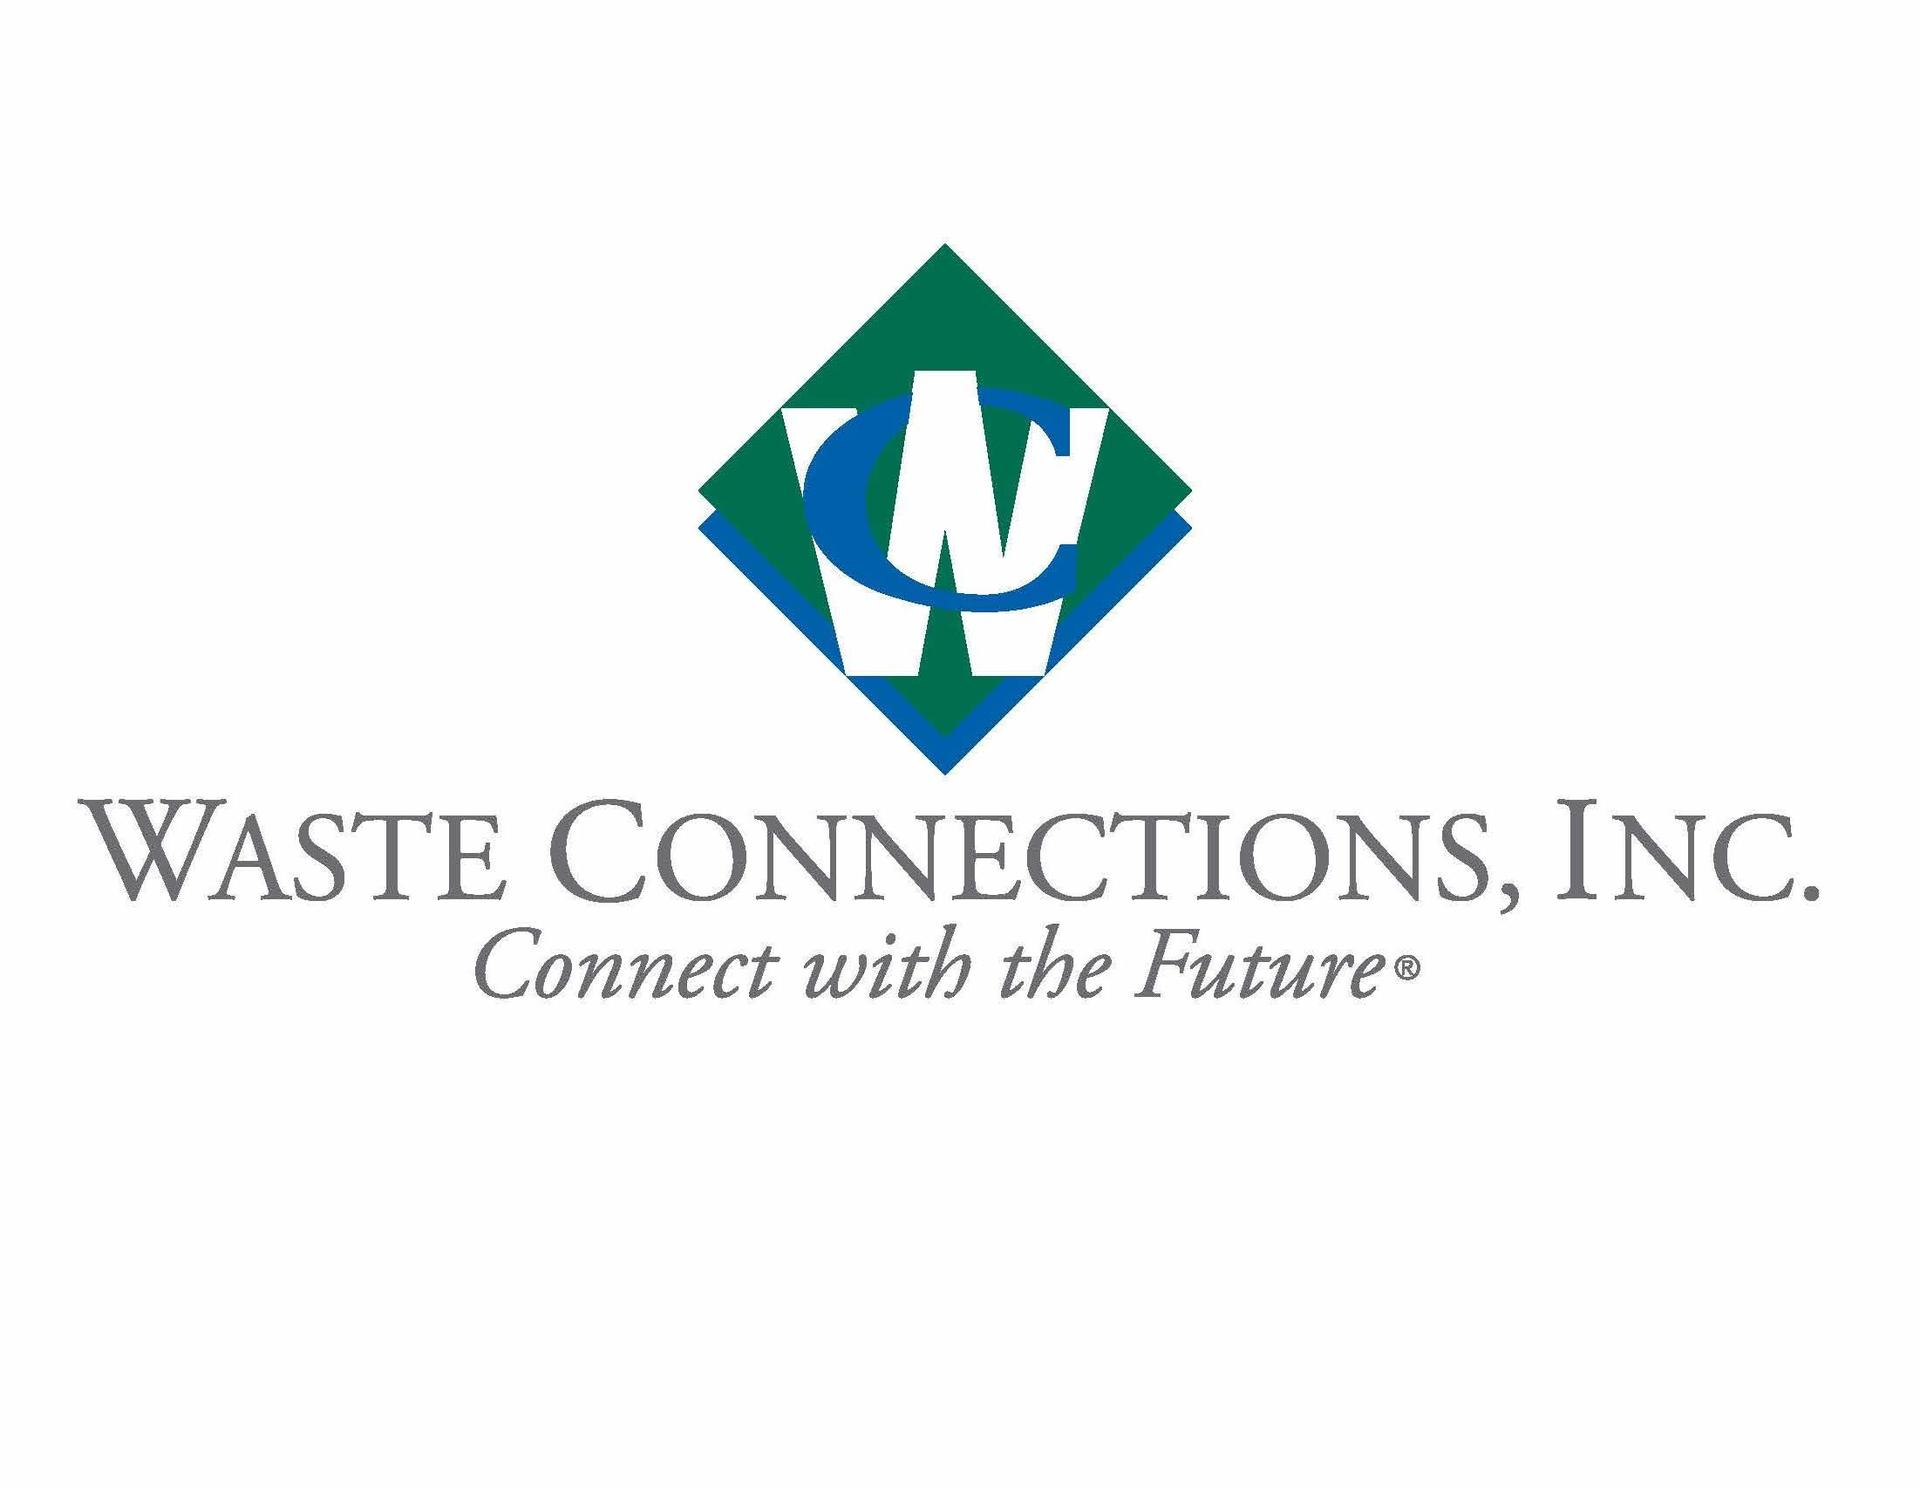 Waste Connections, Inc. Logo